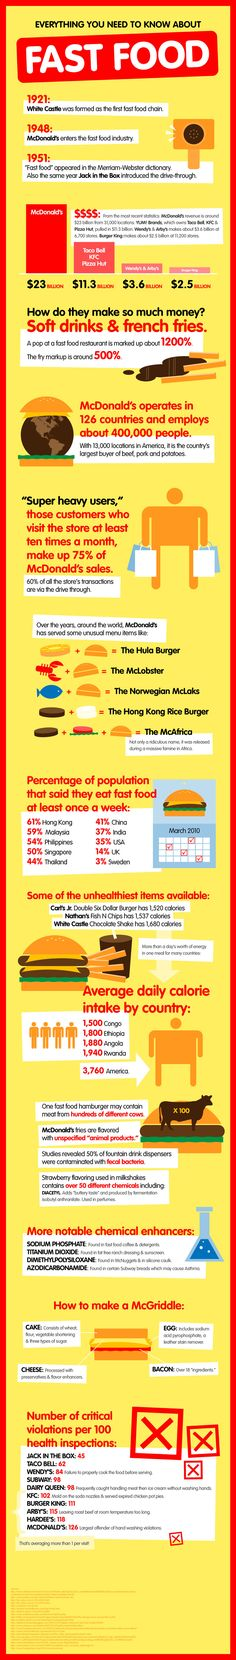 Everything You Need to Know About Fast Food Infographic